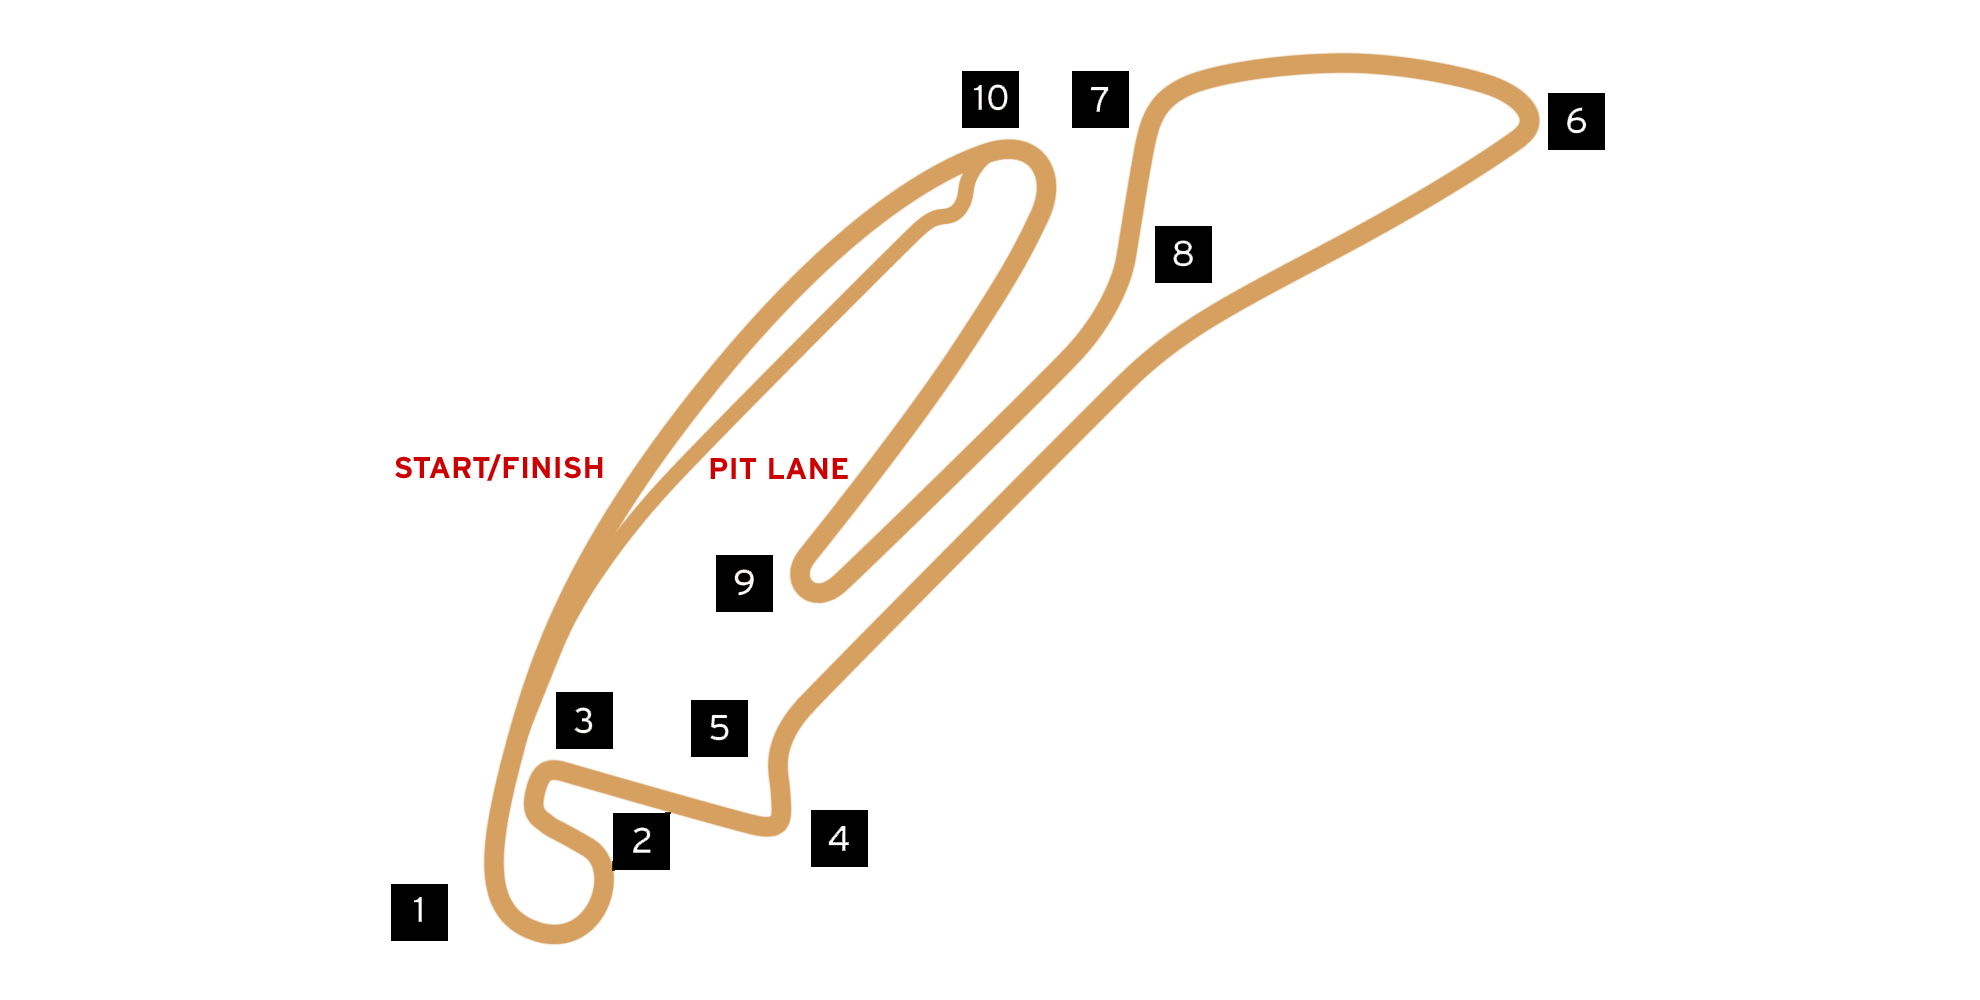 DS TECHEETAH Berlin Formula E race track map